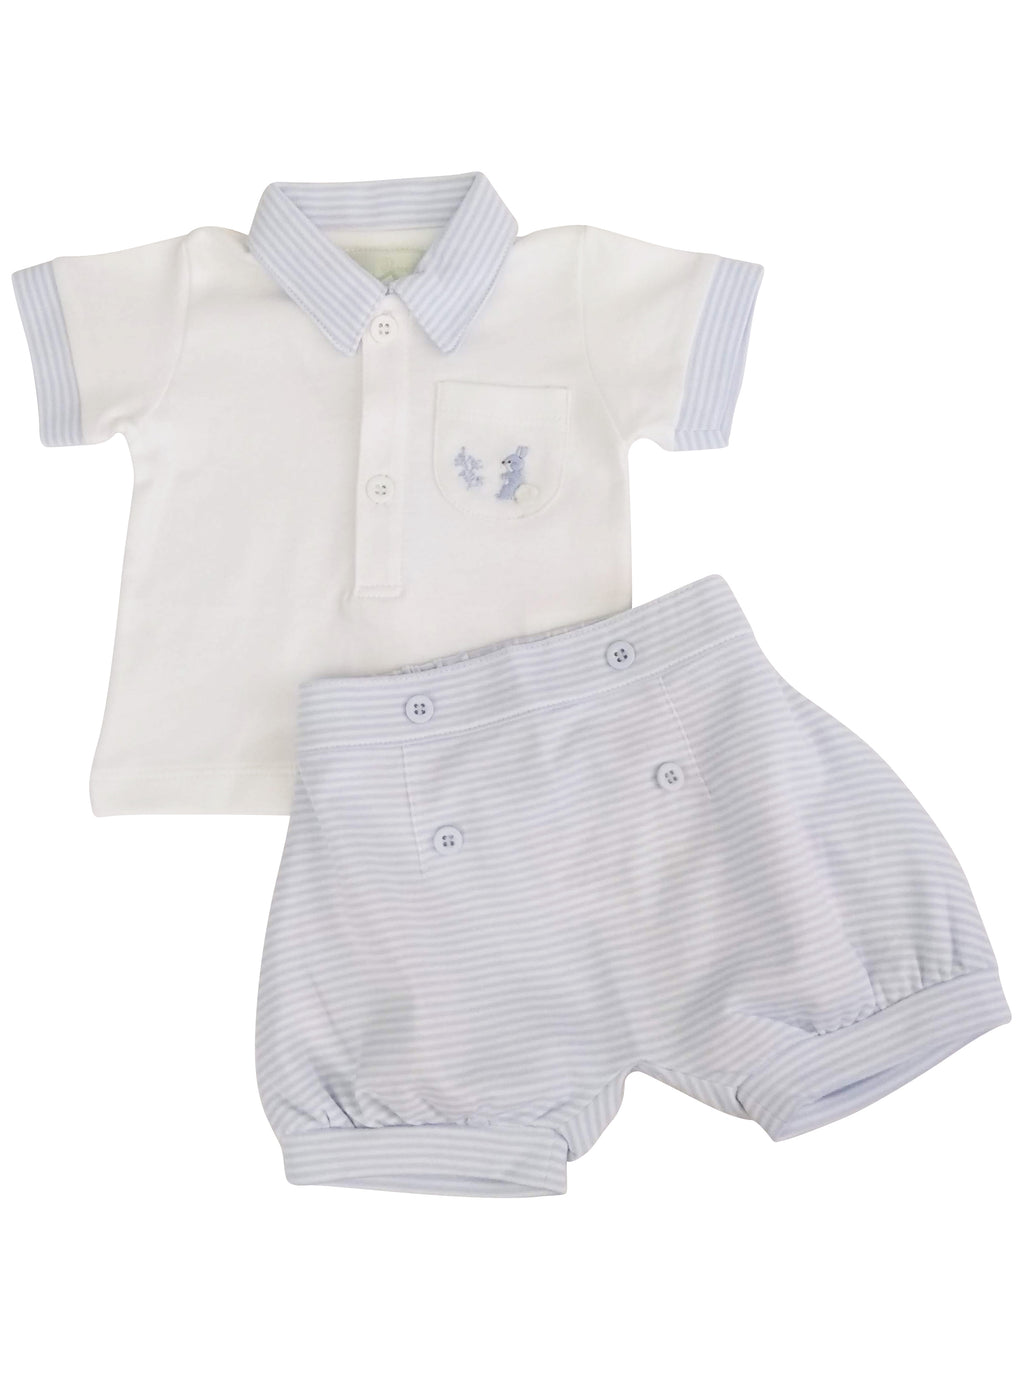 Baby Boy's Striped Bunny Shirt and Shorts Set - Little Threads Inc. Children's Clothing